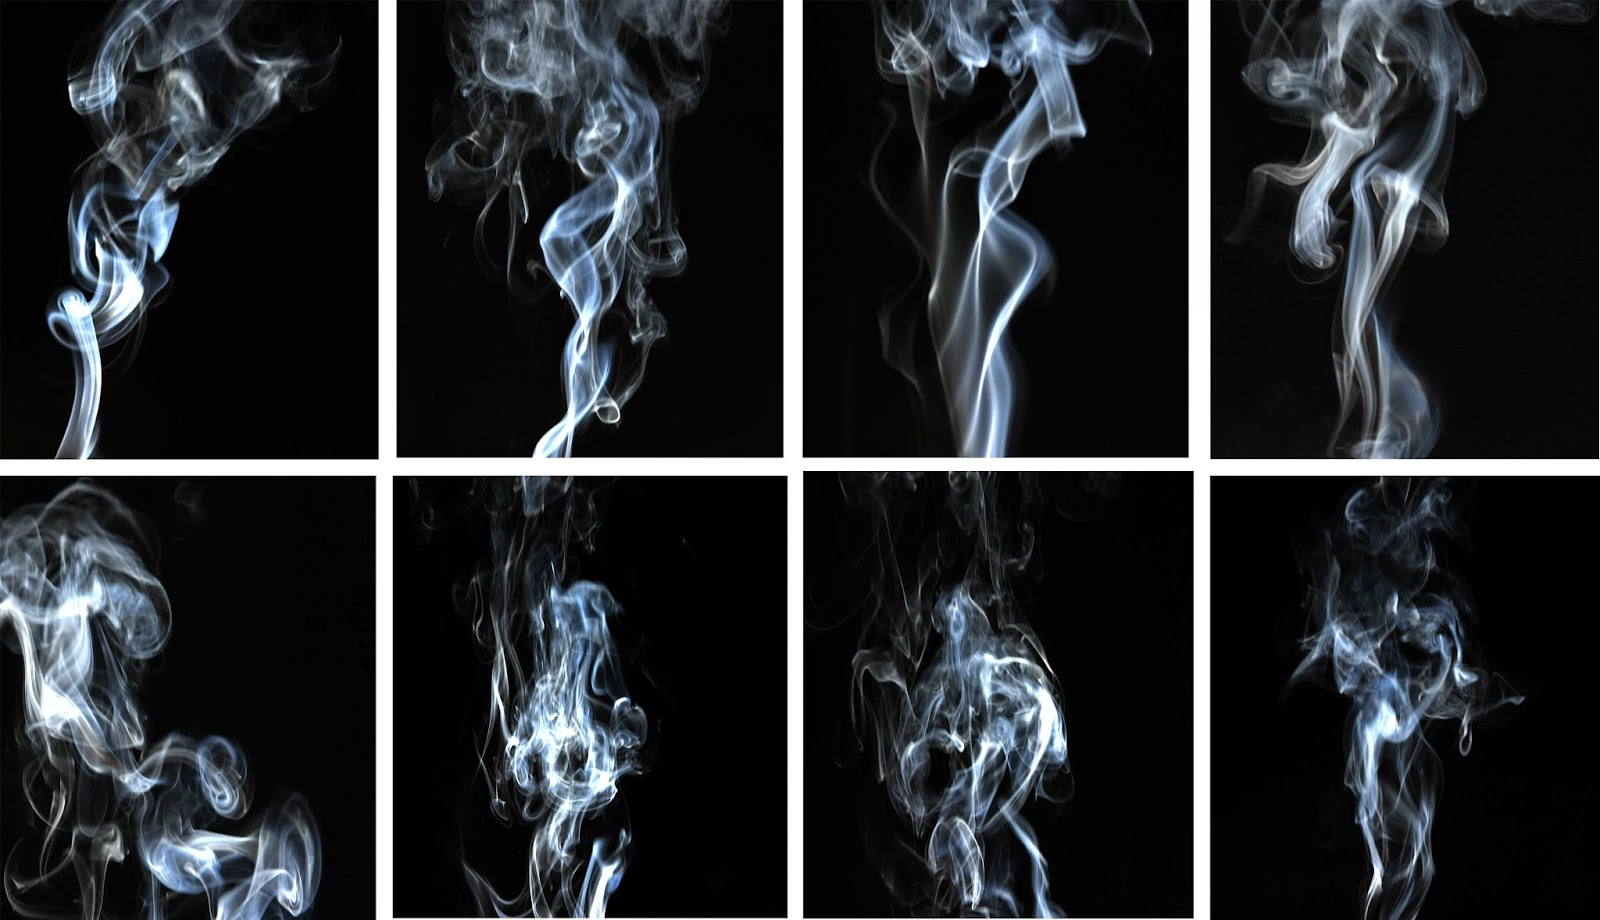 Smoking High Quality Images Nice Collection